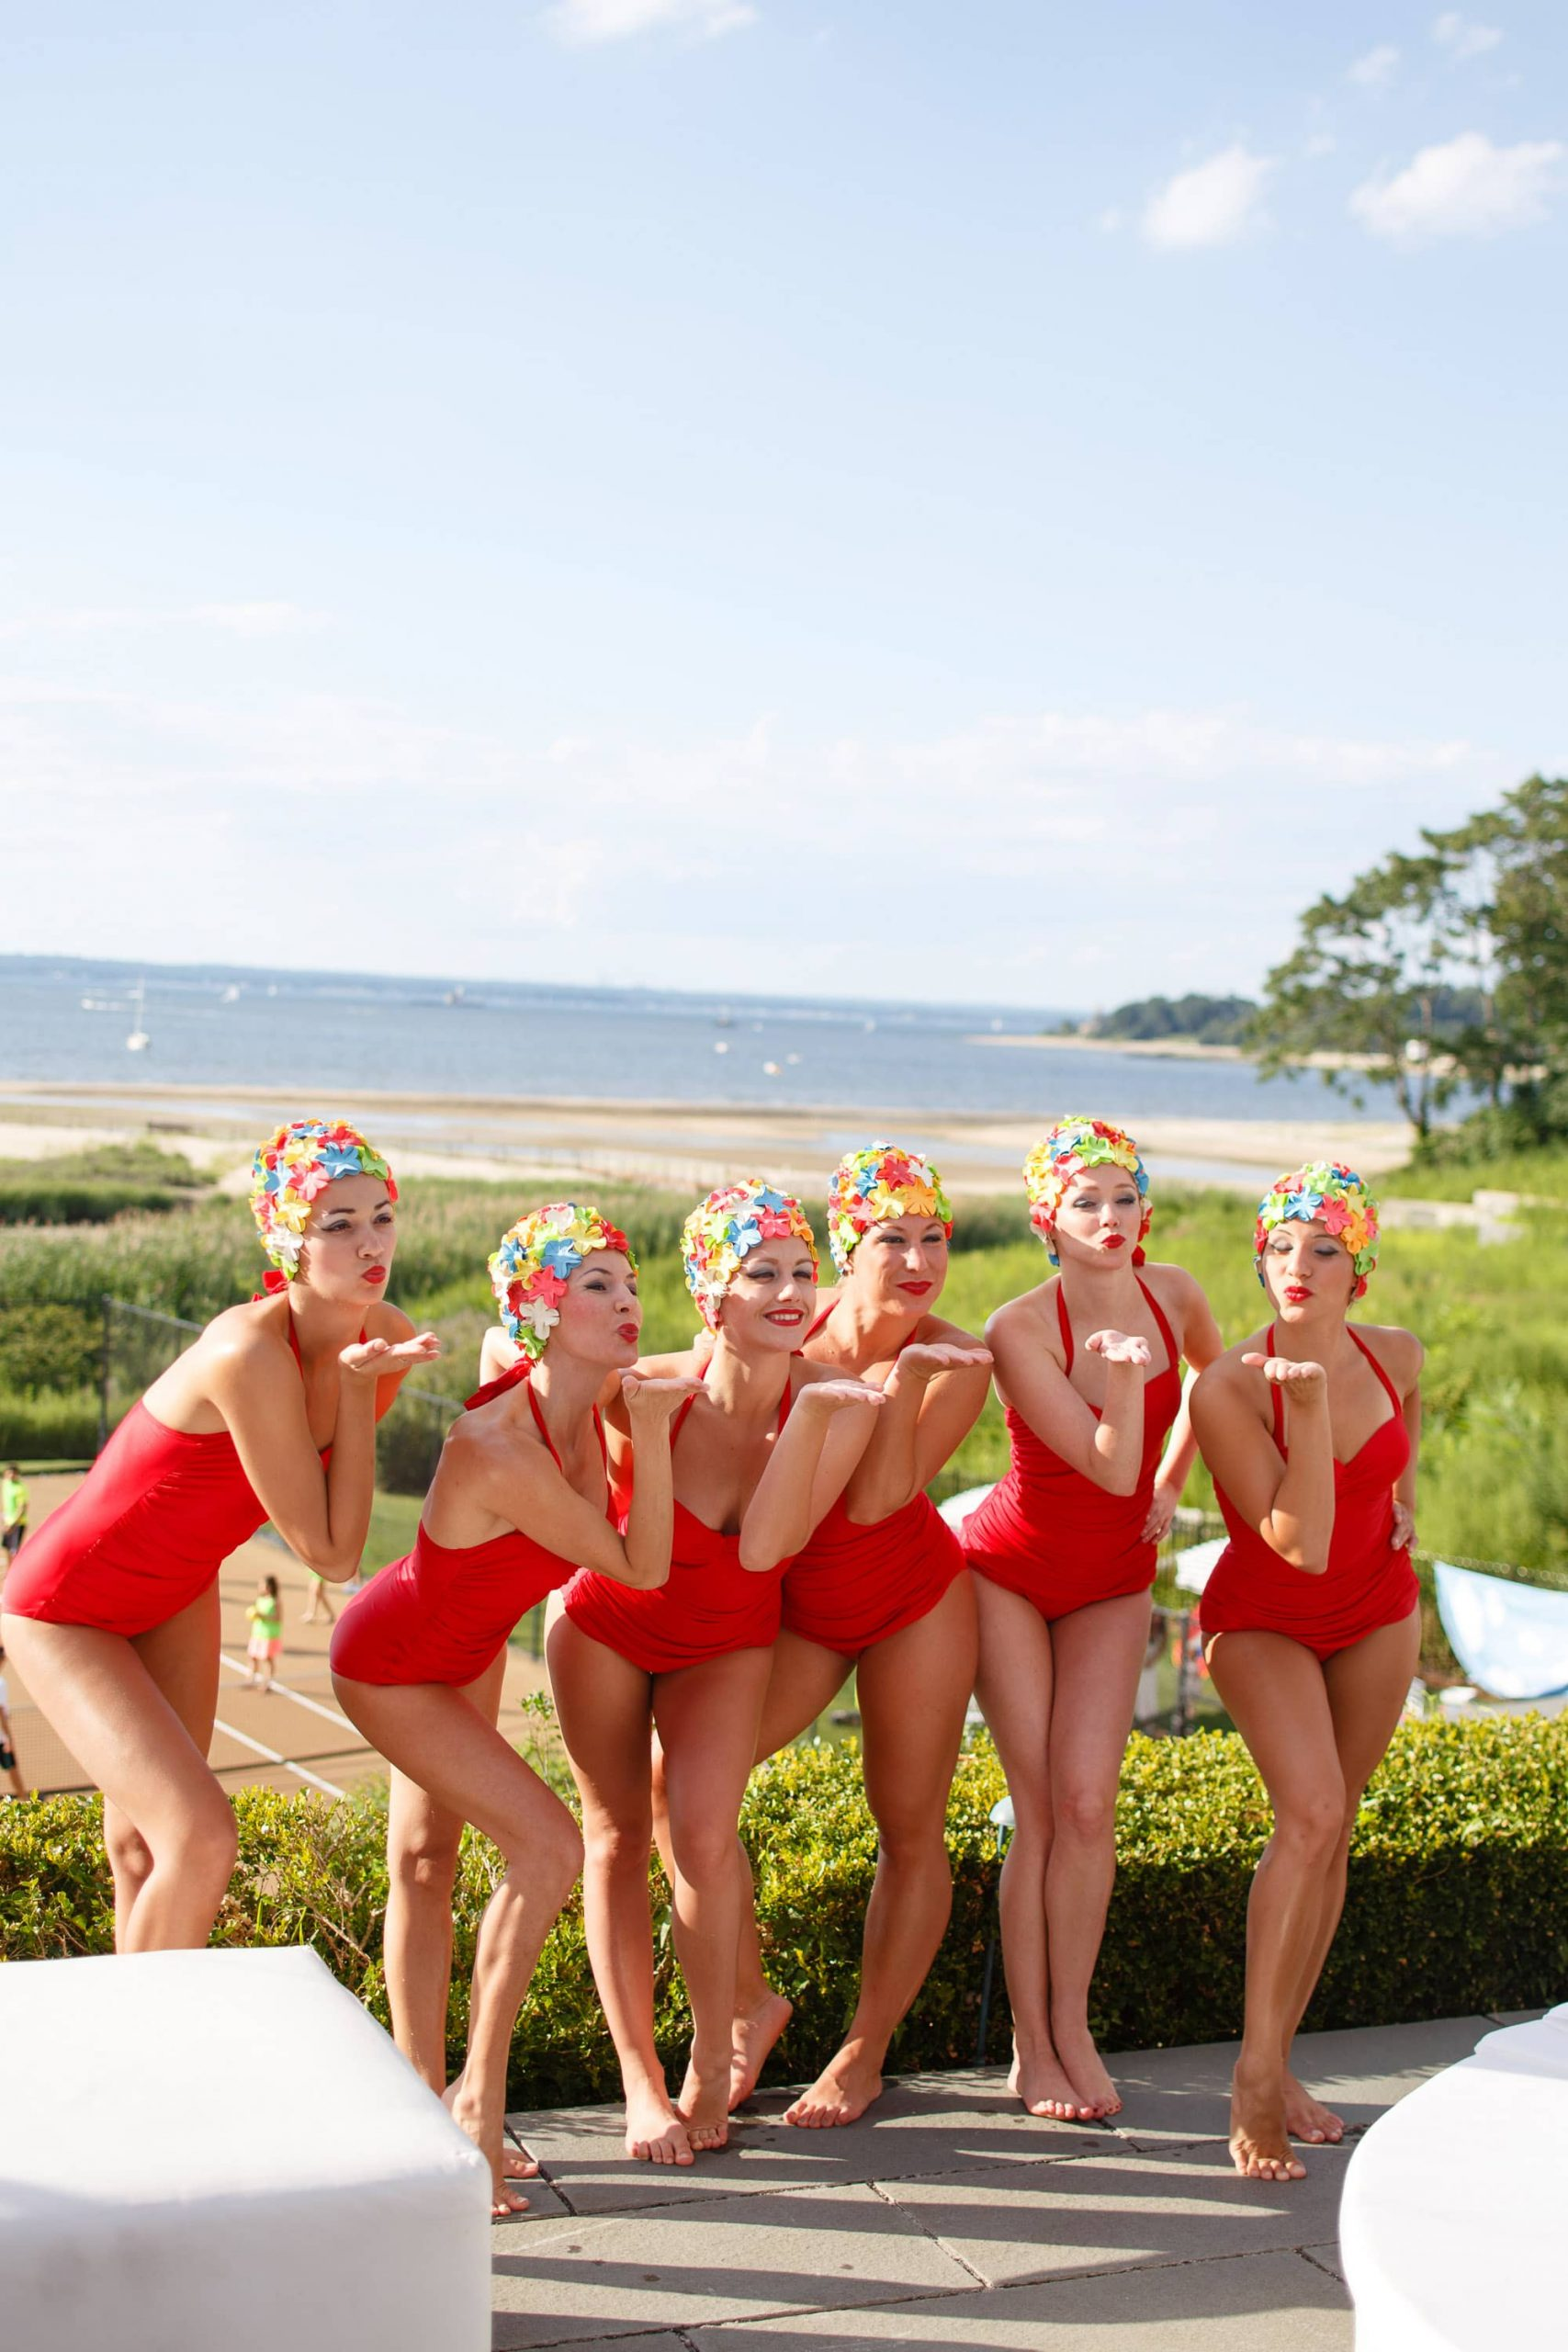 Synchronized swimmers in red suits and colorful caps blowing a kiss at this South Beach-inspired first birthday pool party in the Hamptons | Photo by Cava Photo